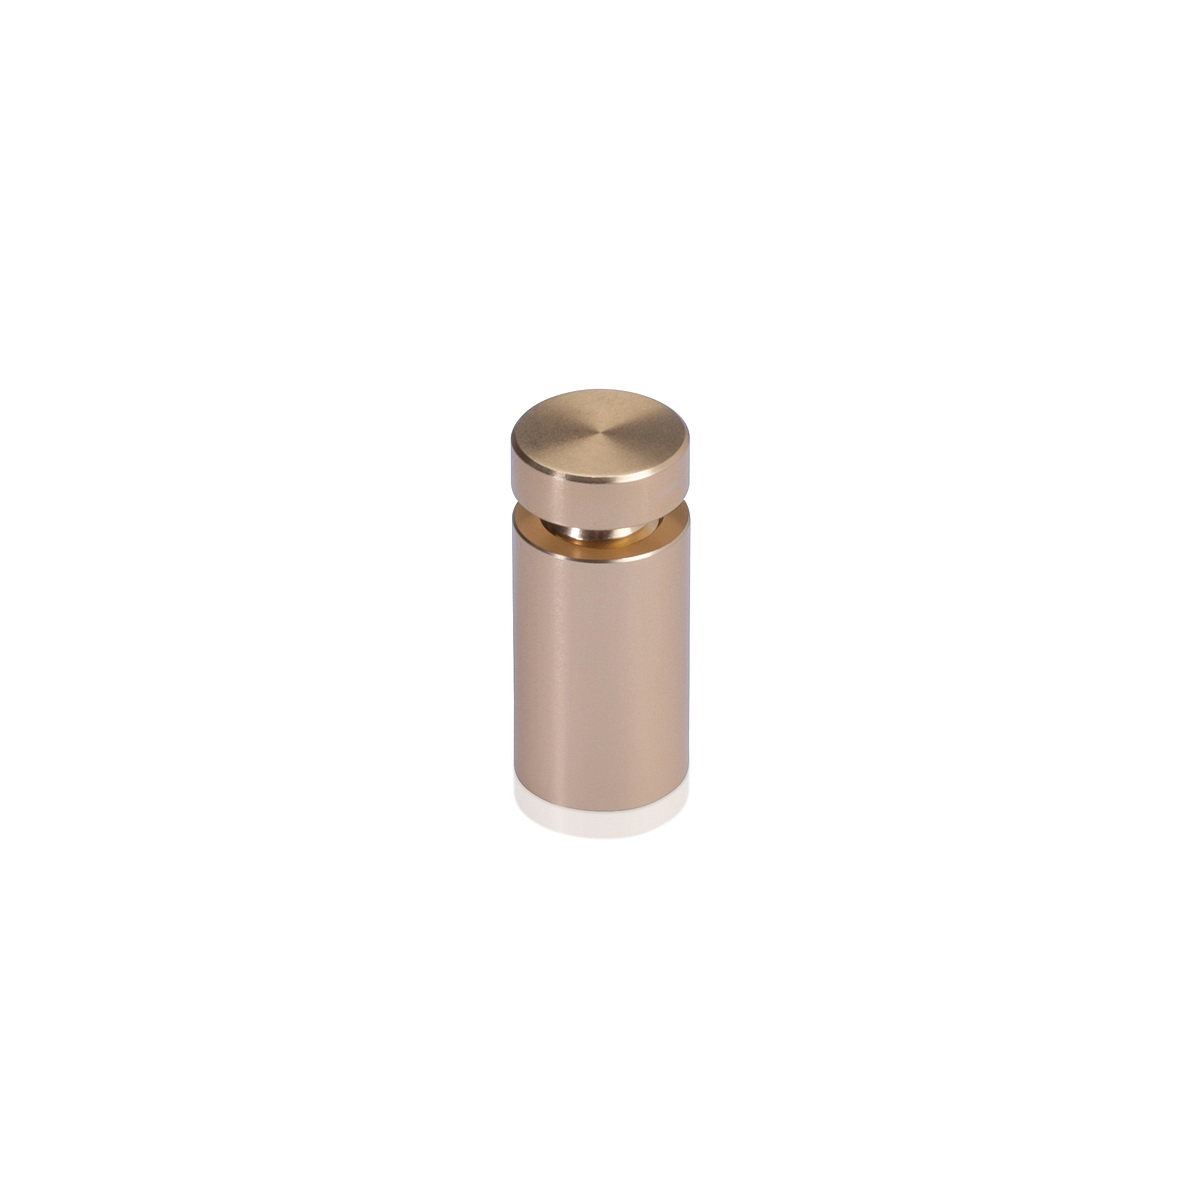 Affordable Aluminum Standoffs, Diameter: 1/2'', Standoff: 3/4'', Aluminum Champagne Finish